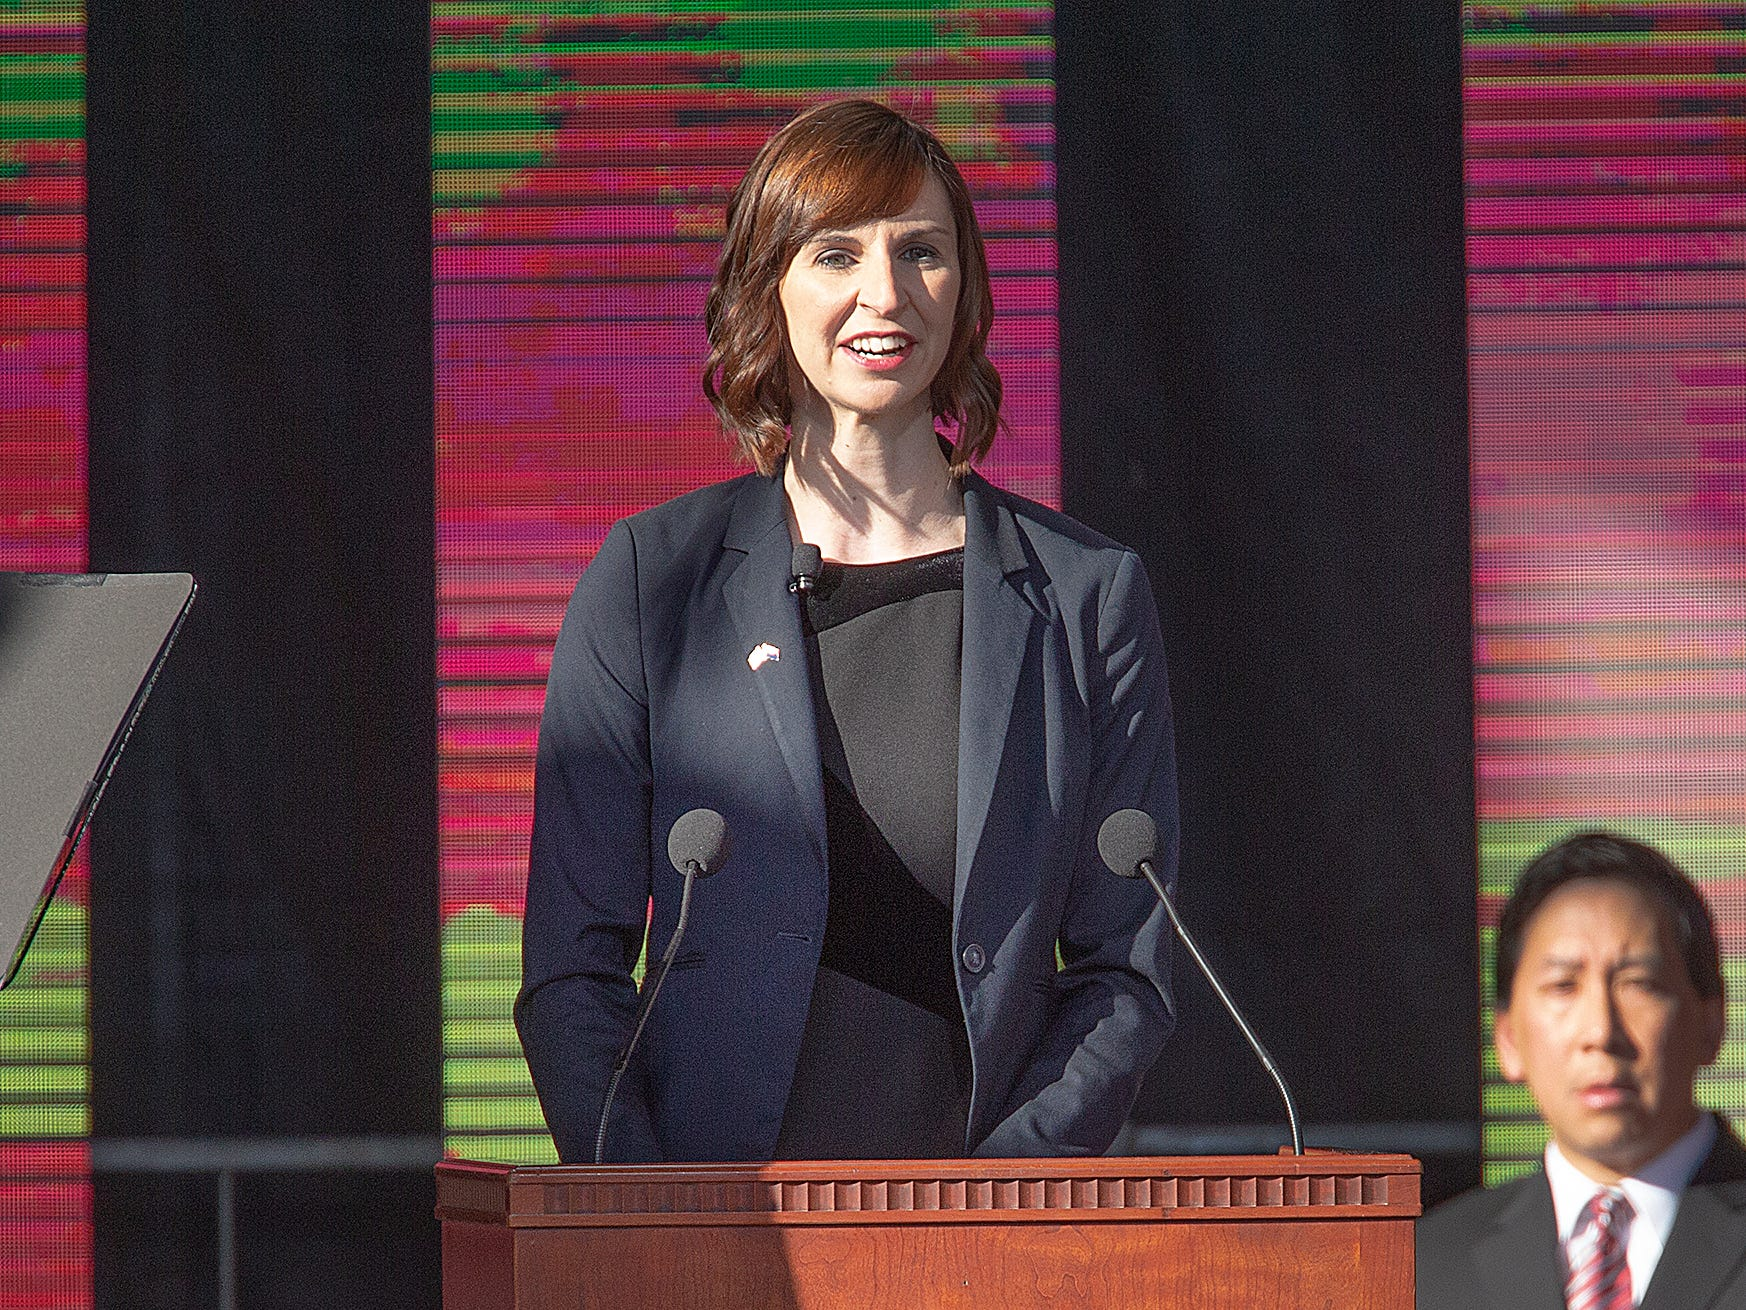 Kathy Hoffman speaks after being sworn in as Arizona Superintendent of Public Instruction by Arizona Supreme Court Chief Justice Scott Bales at the Arizona Capitol in Phoenix at the 2019 State of Arizona Inauguration ceremony on Jan. 7, 2019. Gov. Doug Ducey , Secretary of State Katie Hobbs, Attorney General Mark Brnovich, State Treasurer Kimberly Yee, Hoffman and State Mine Inspector Joe Hart were all sworn into office during the ceremony.